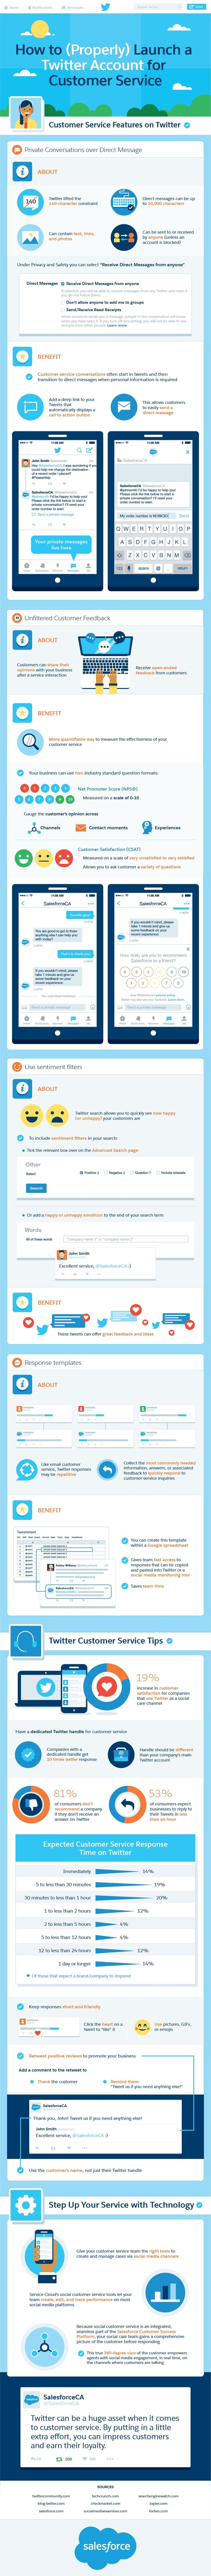 How to (Properly) Launch a Twitter Account for Customer Service - #infographic